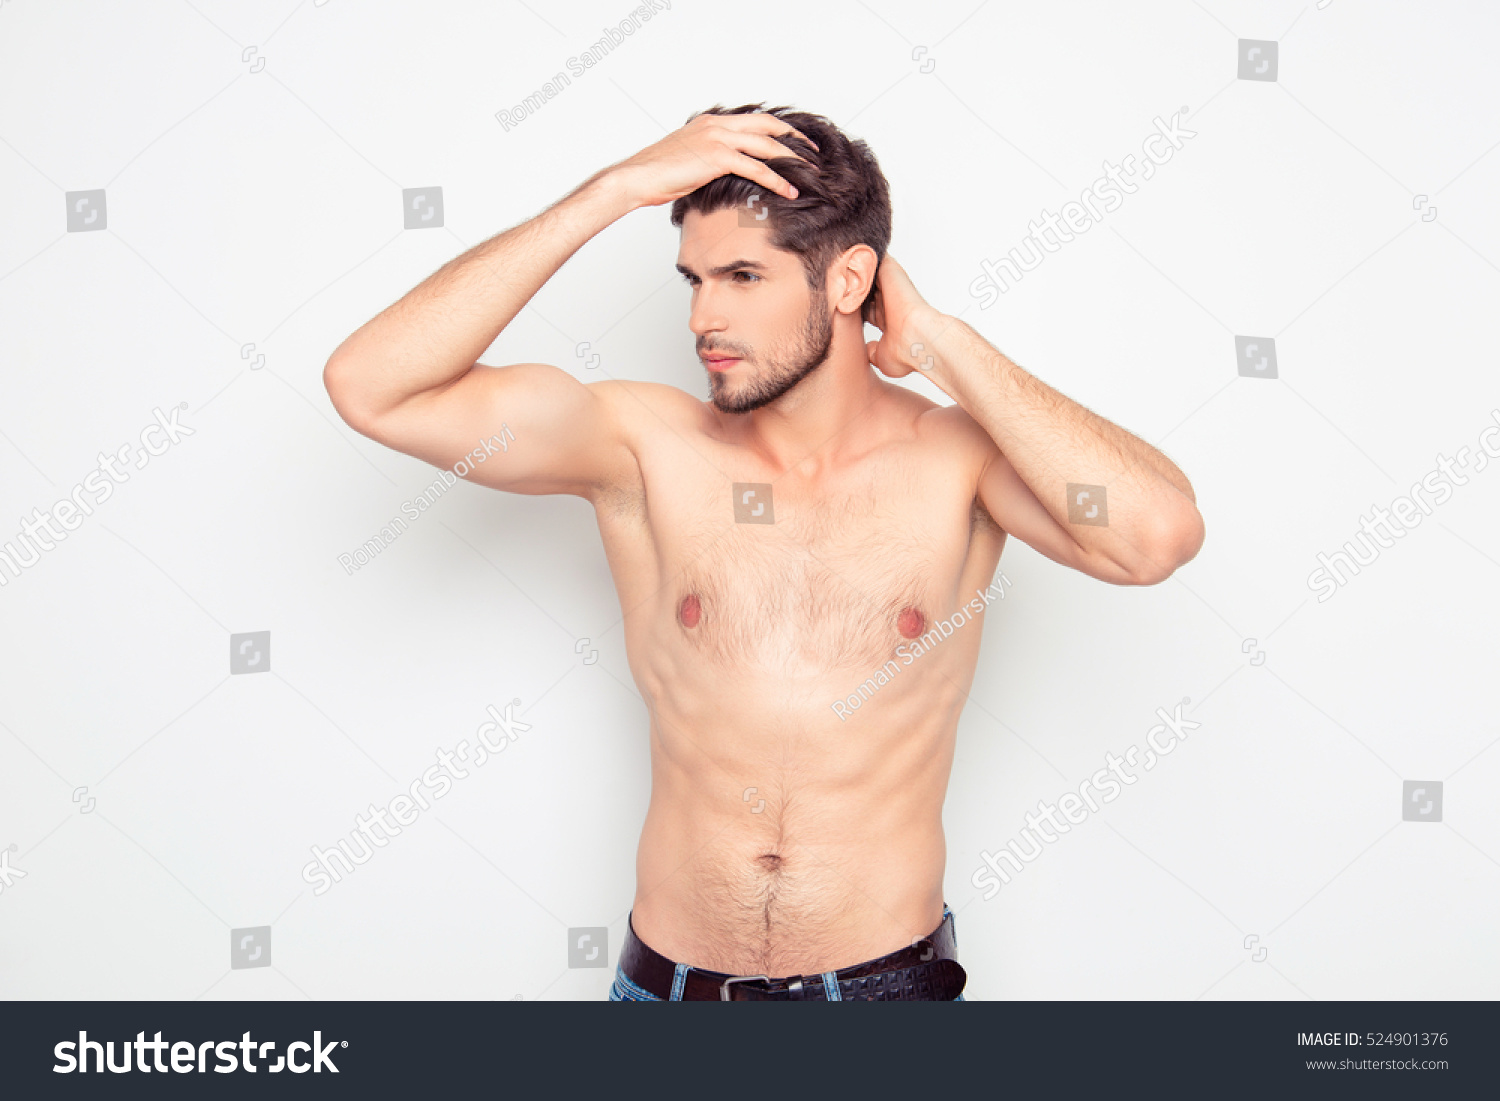 Guy combing hairy pussy